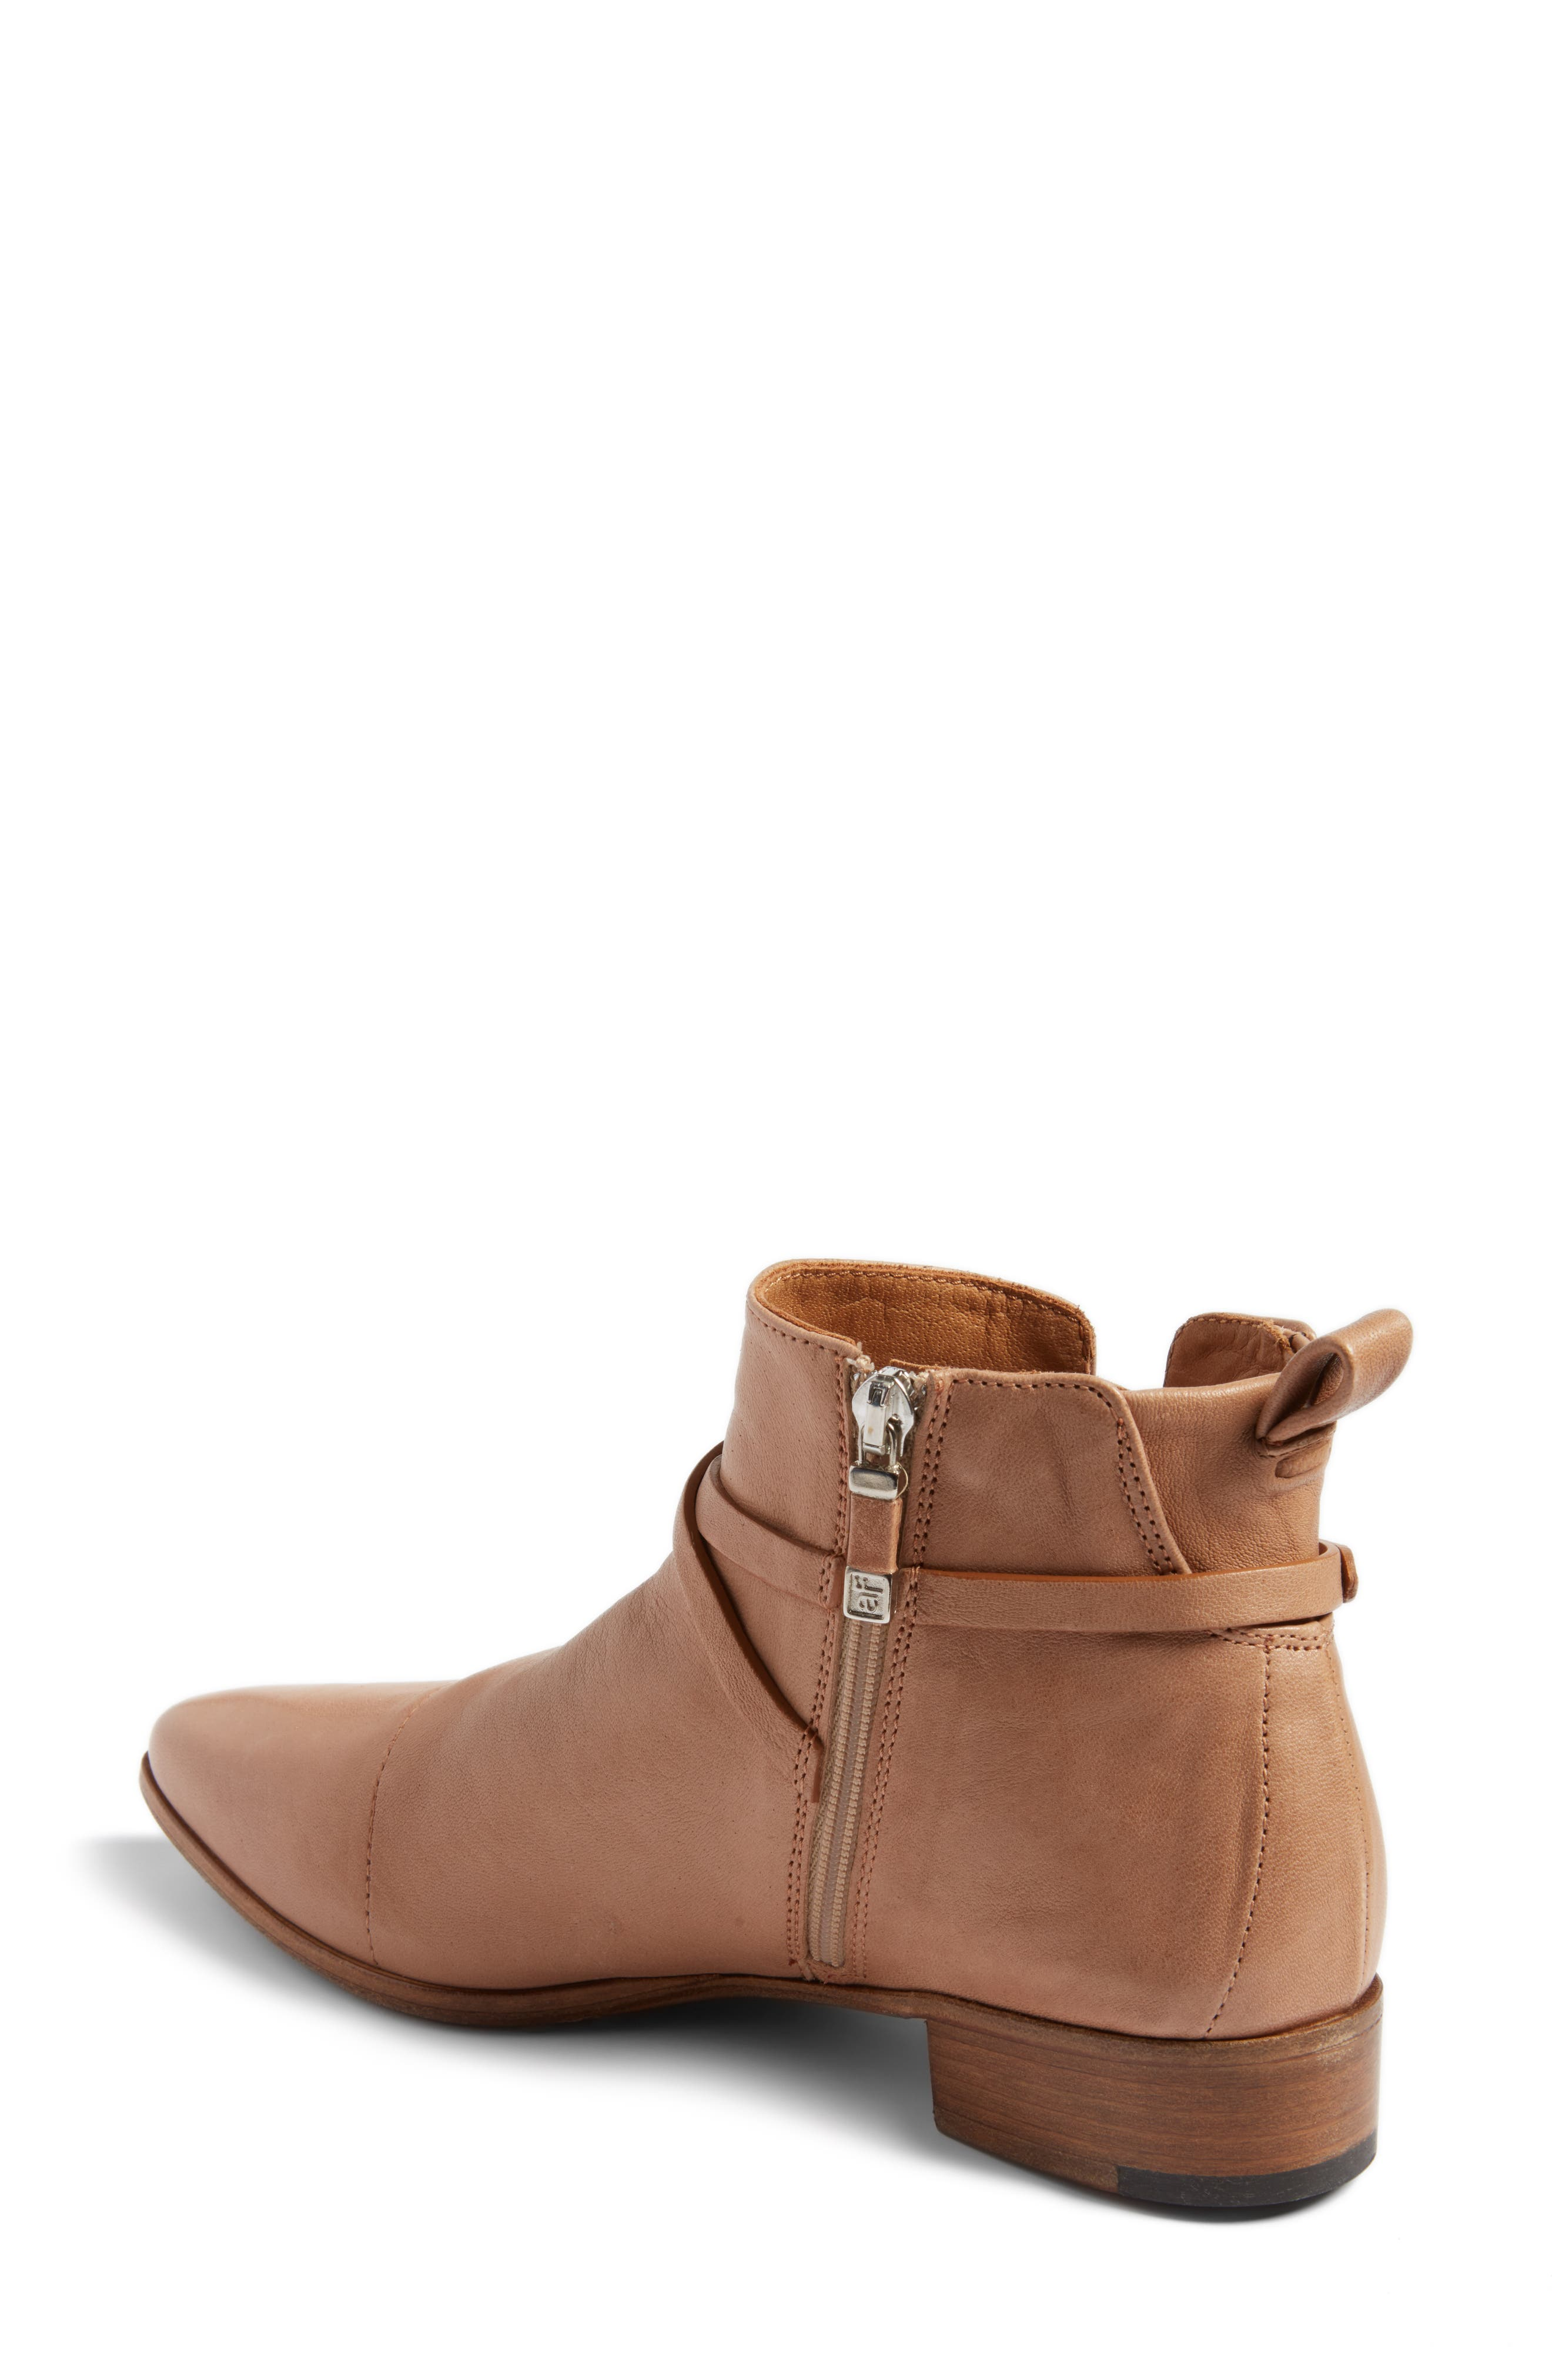 'Mea' Ankle Boot,                             Alternate thumbnail 7, color,